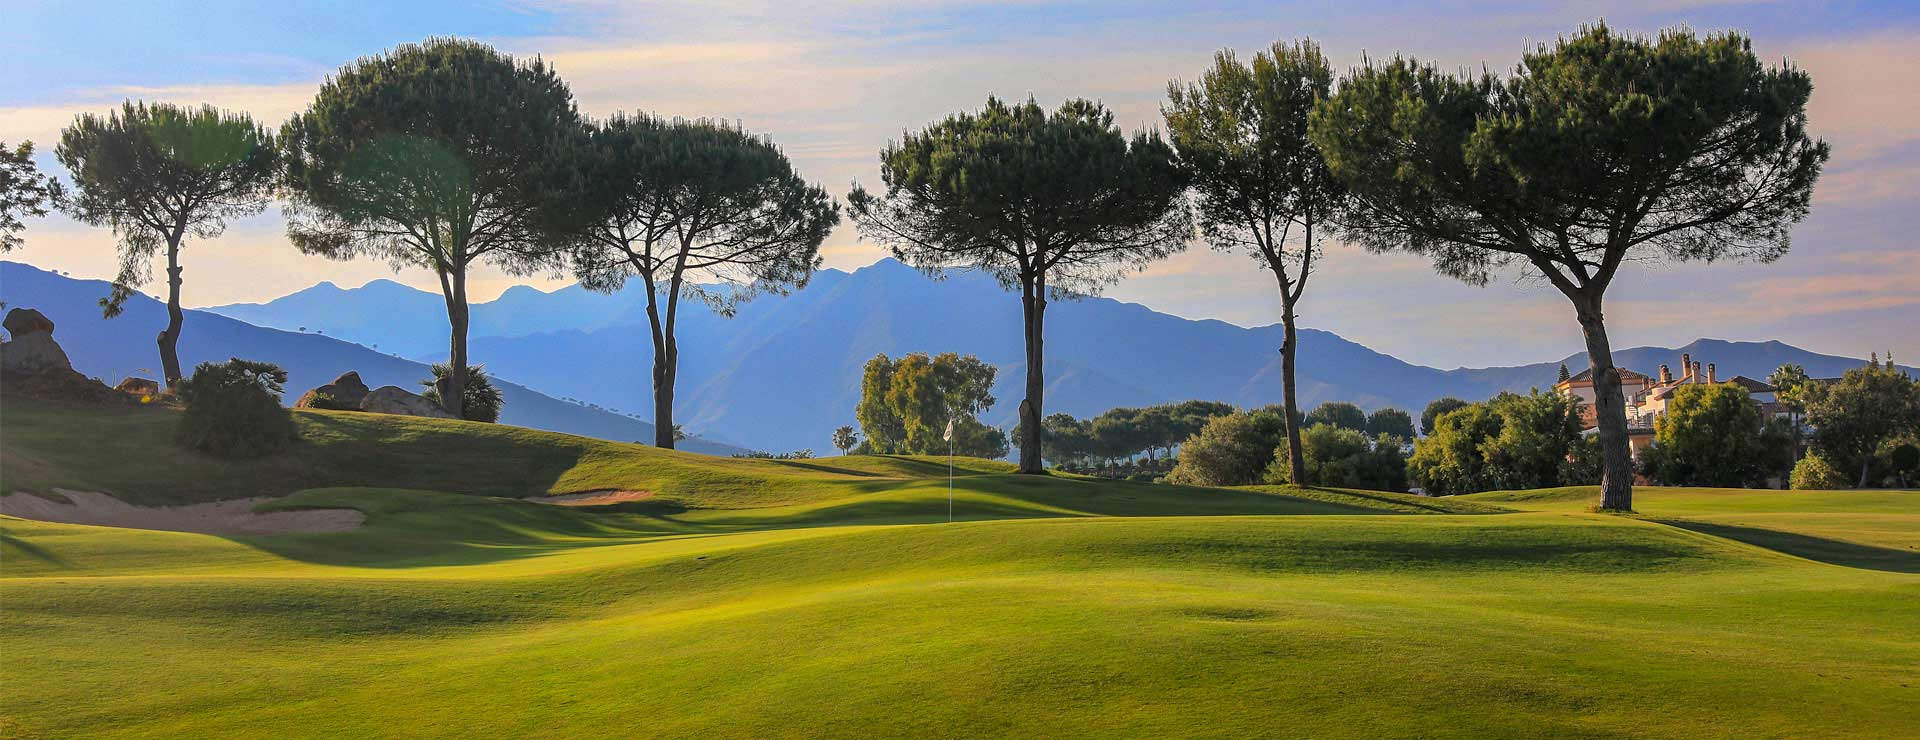 2 Green Fees + Buggy offer